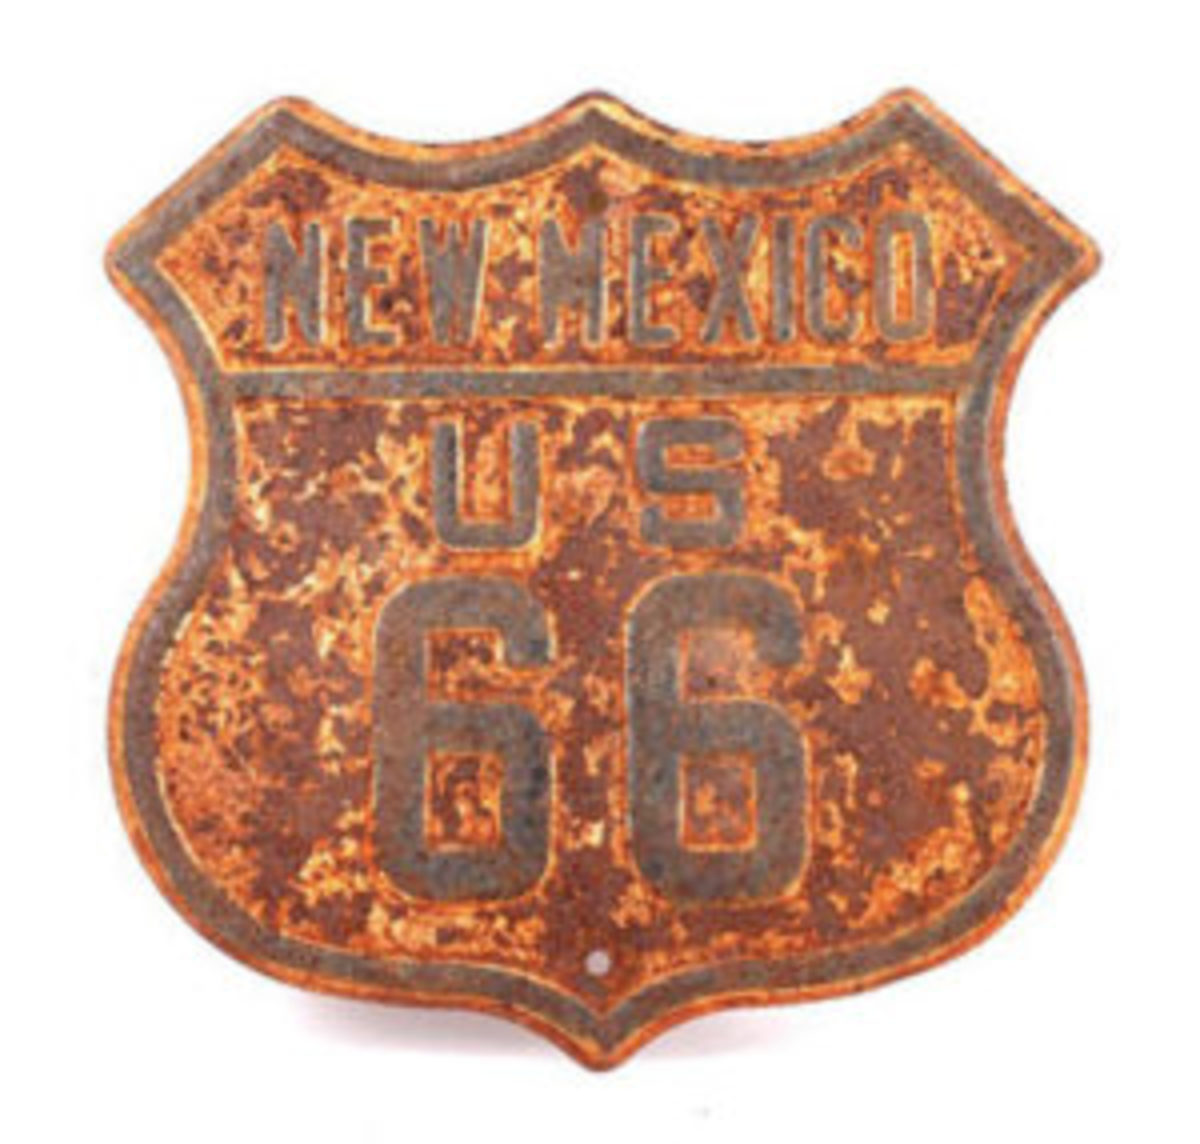 Rusted Route 66 sign